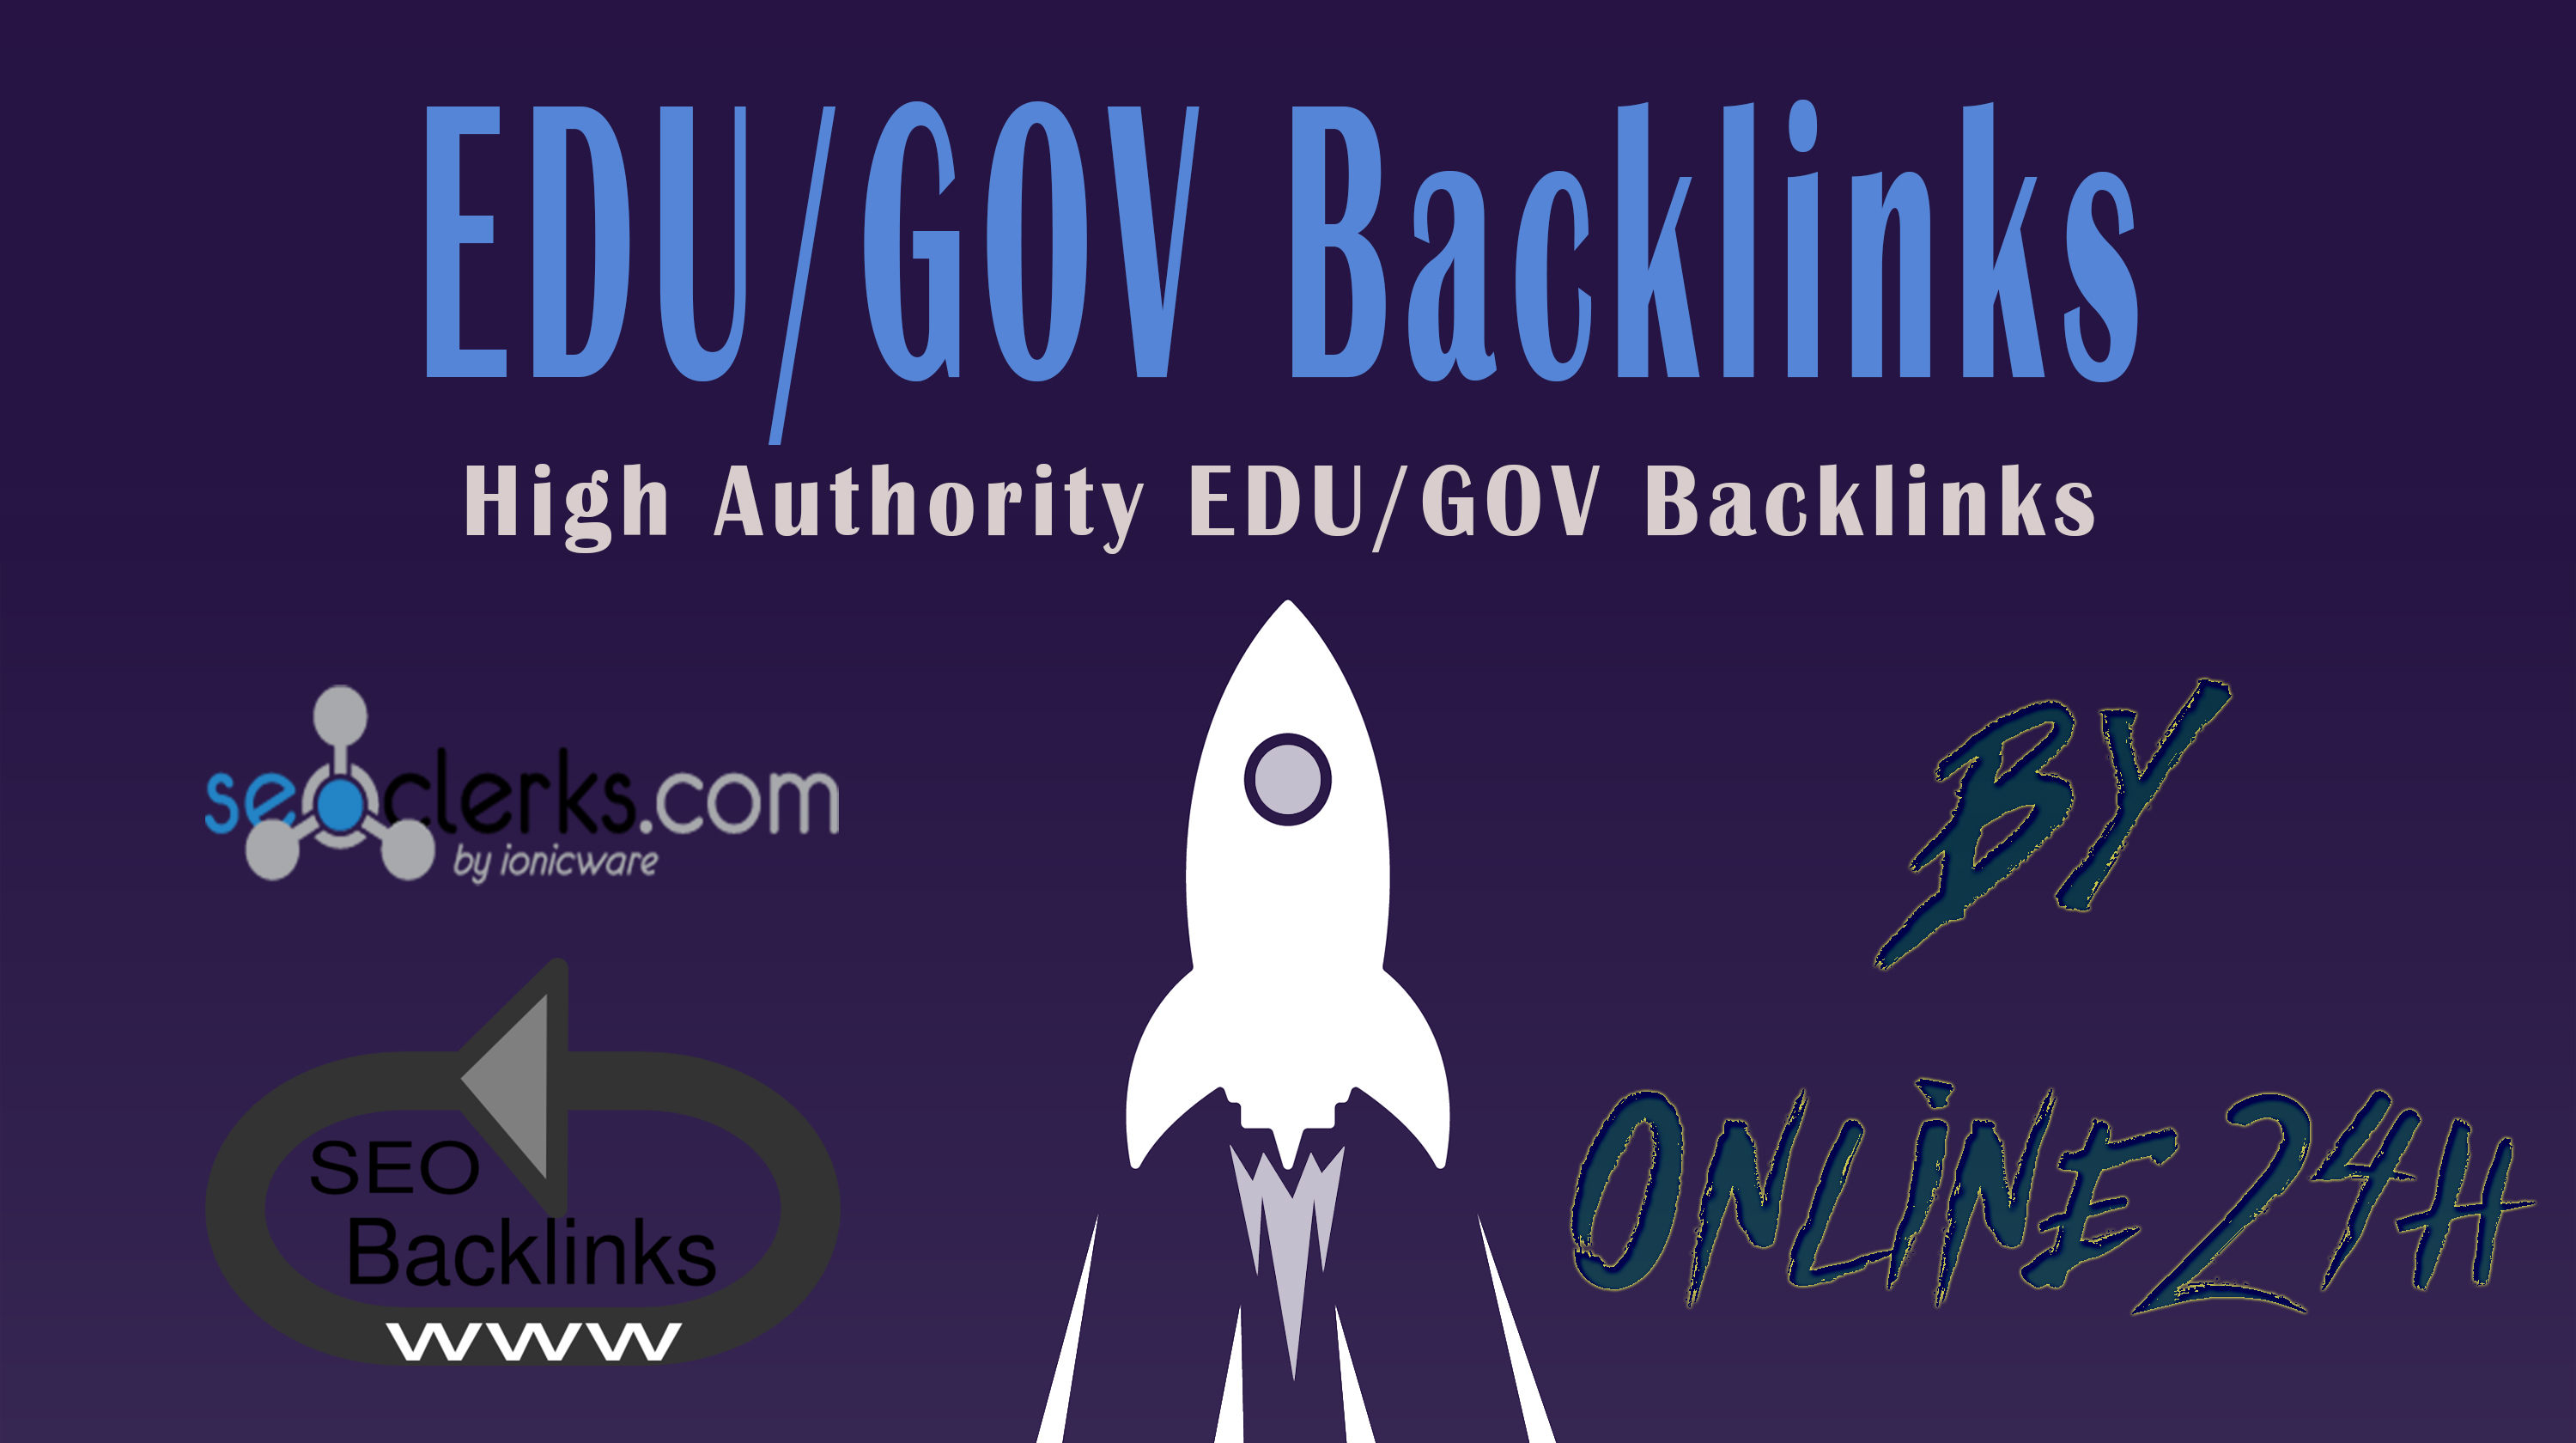 20+. EDU/. GOV Backlinks From Authority Domains only